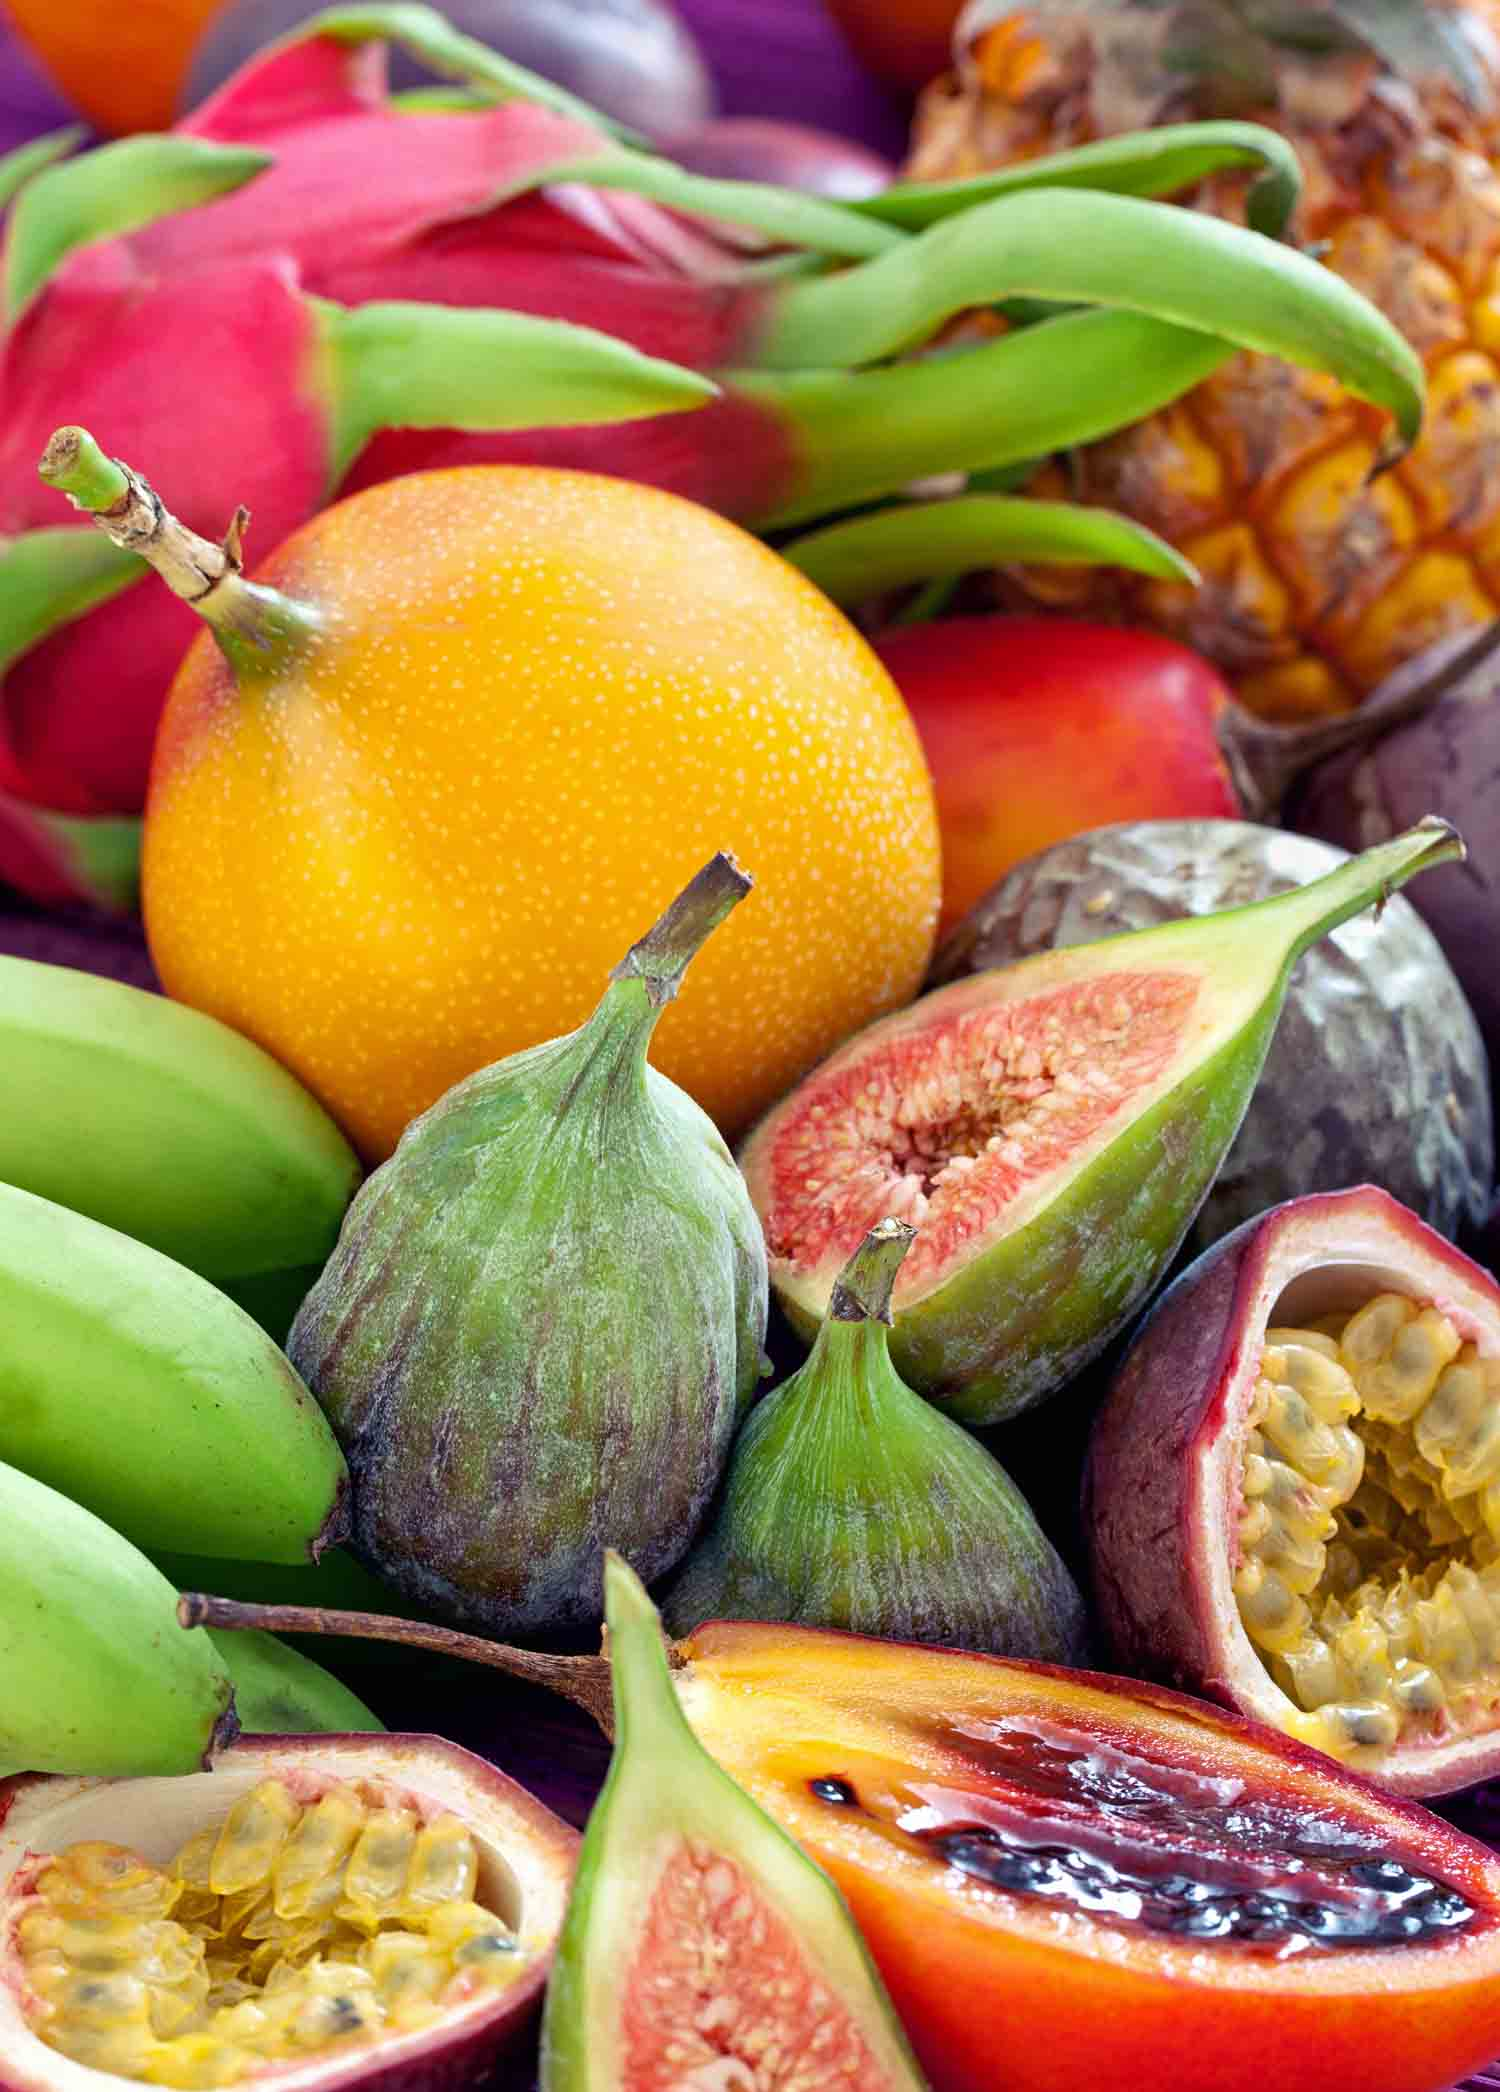 Exotic Filipino fruits in a market